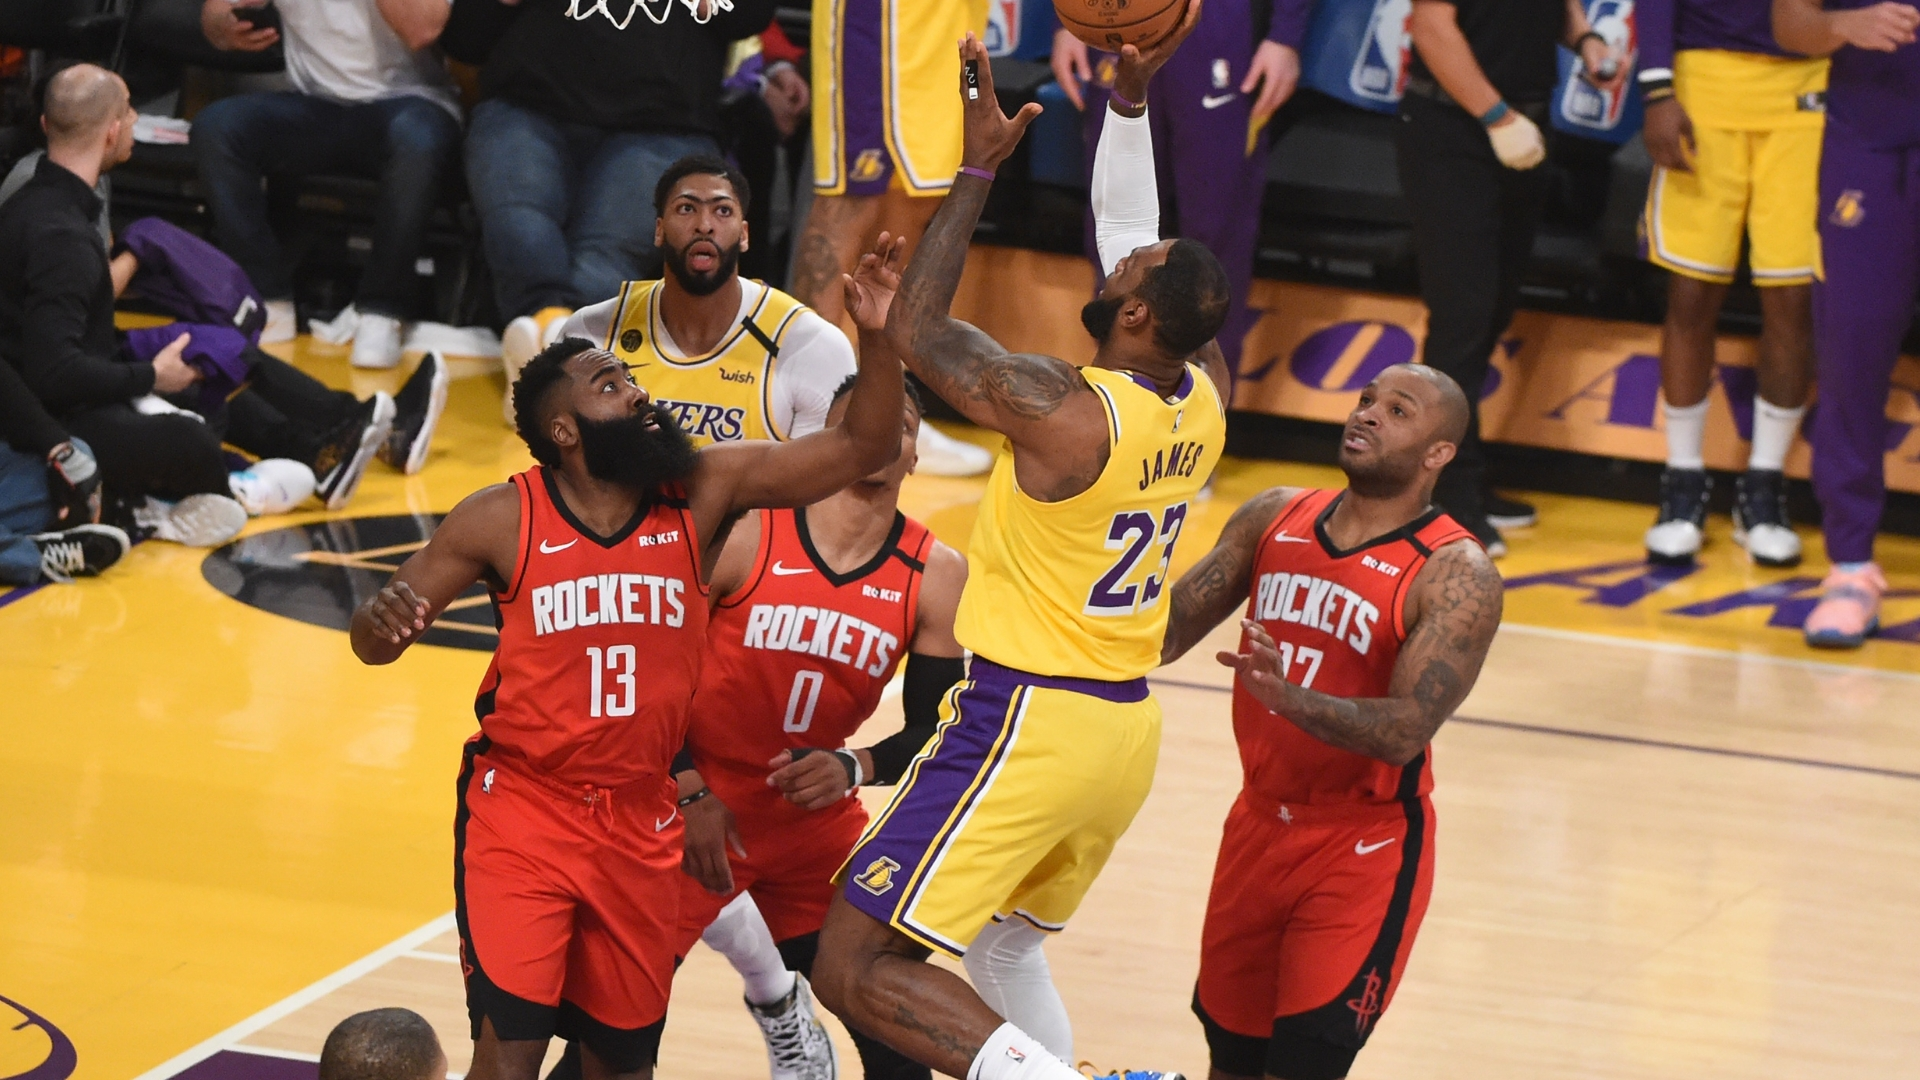 Nba Playoffs 2020 Los Angeles Lakers Vs Houston Rockets Series Preview Nba Com India The Official Site Of The Nba